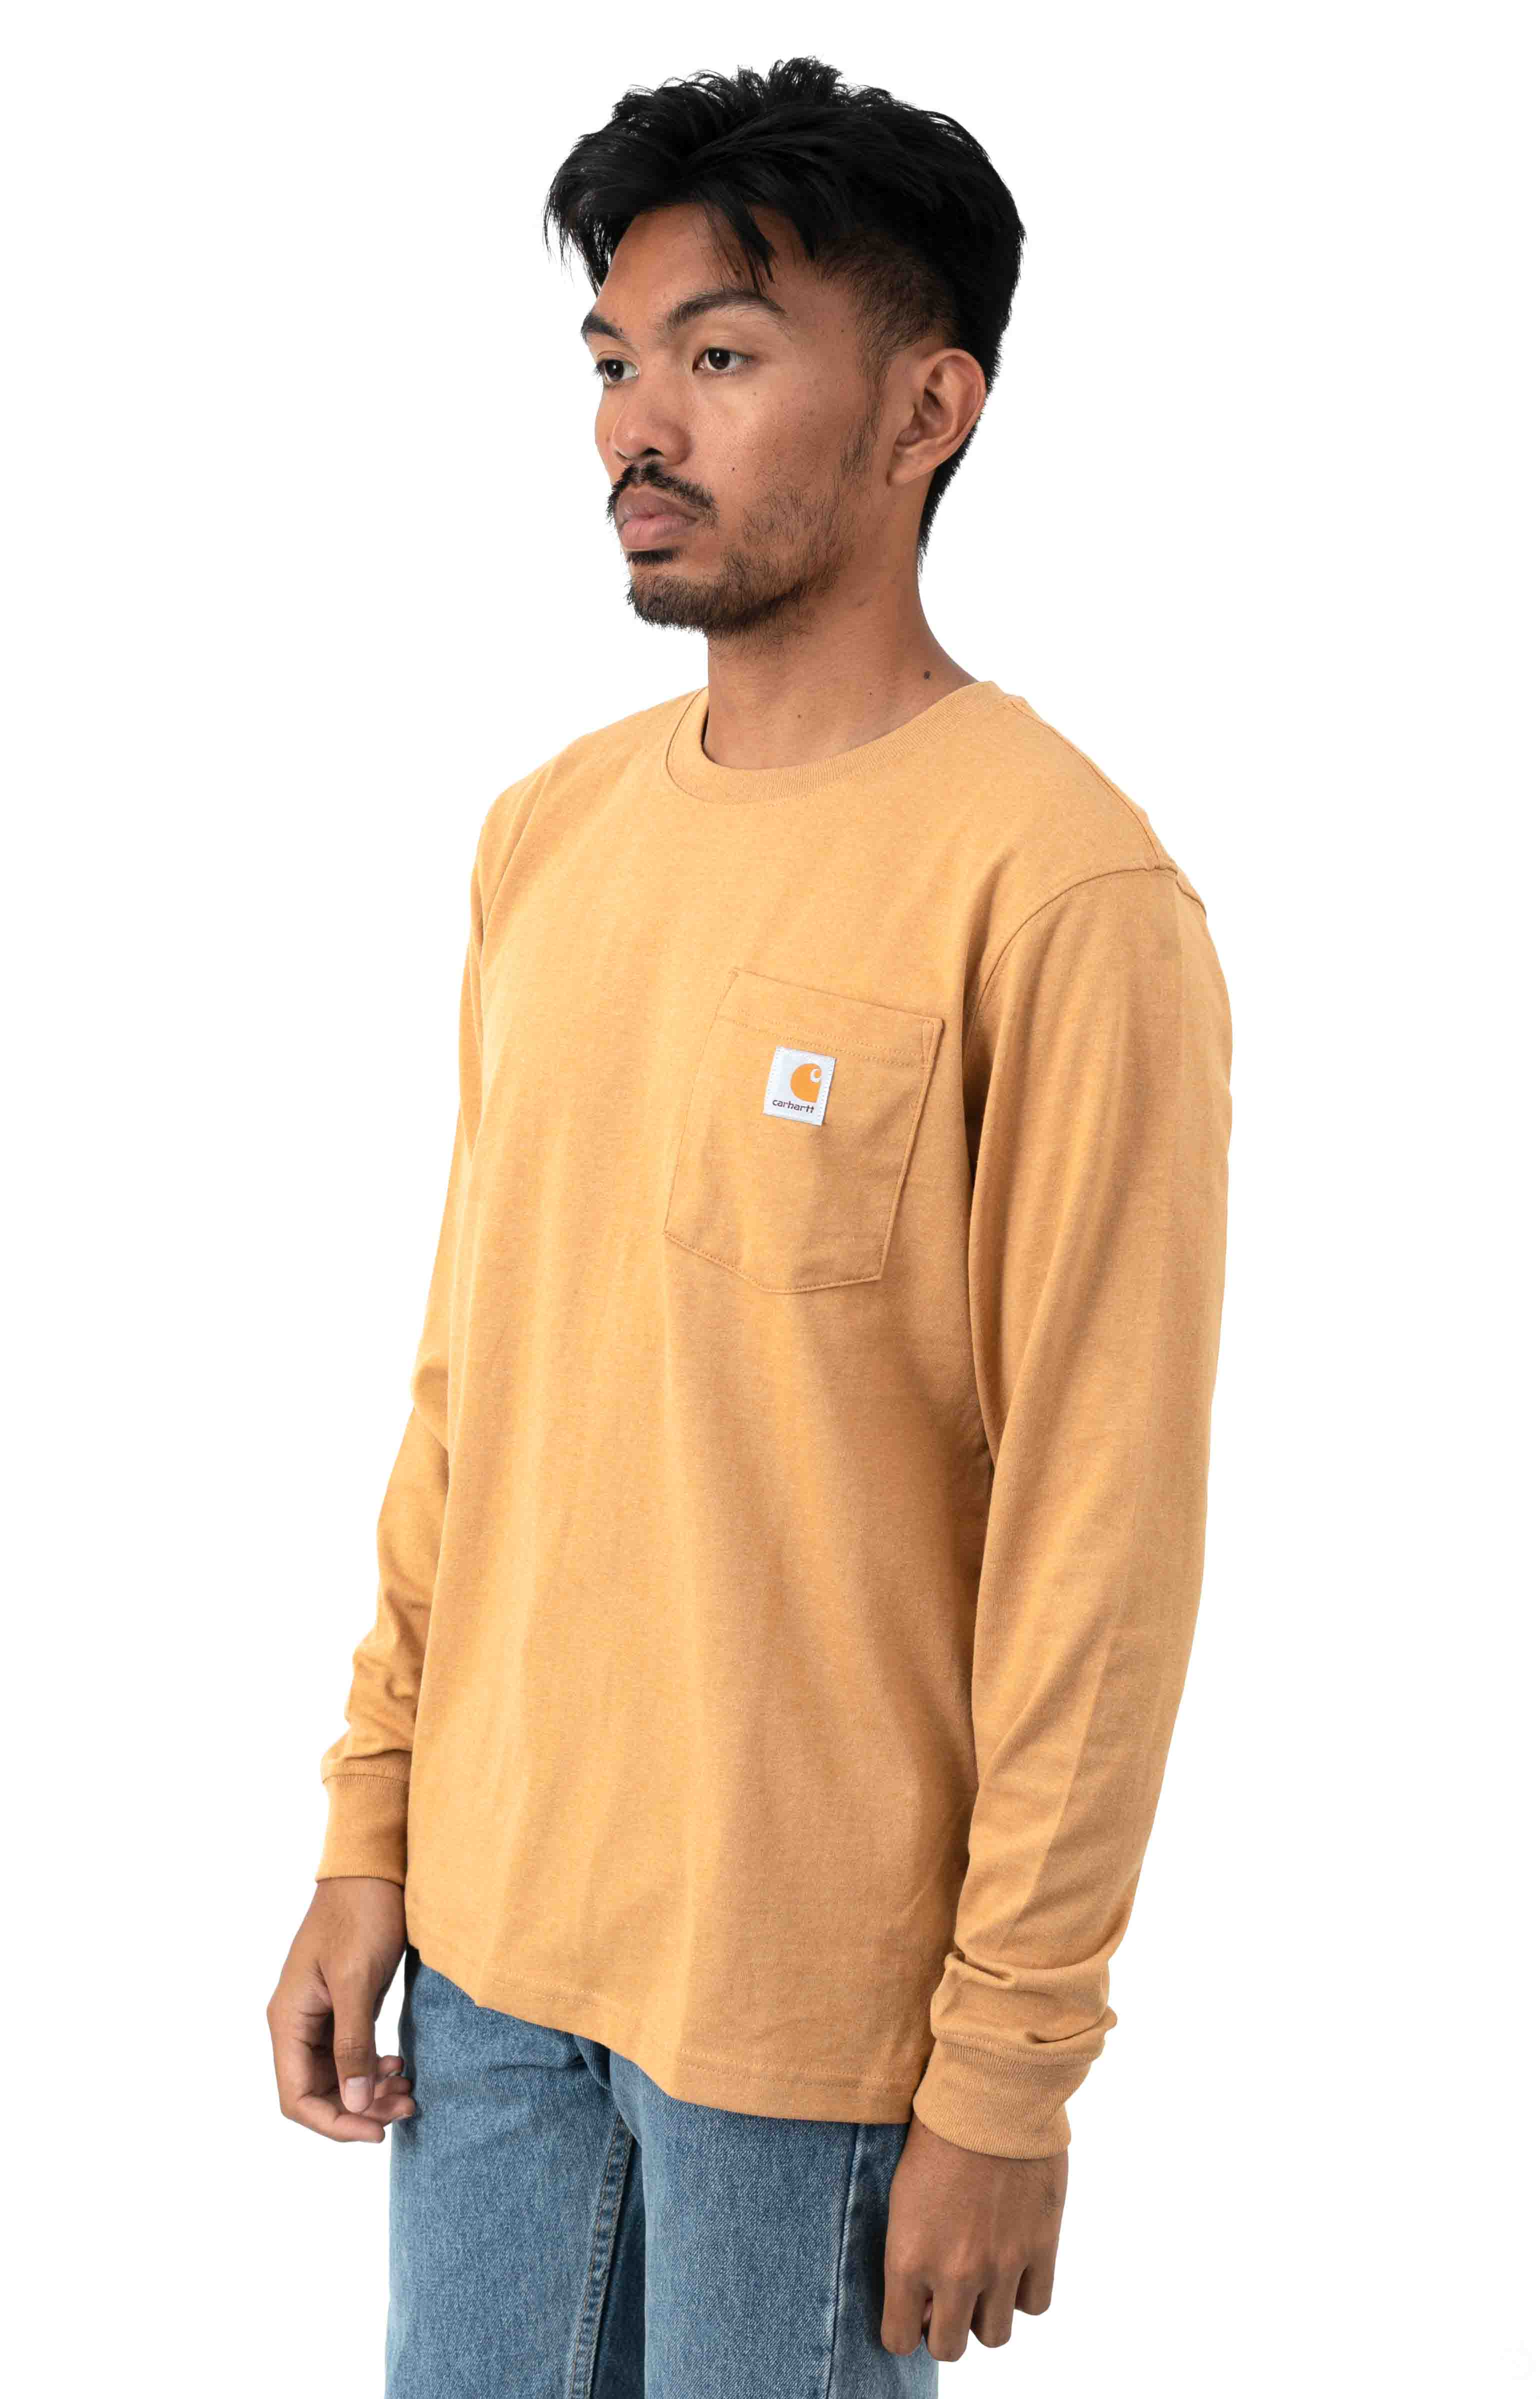 (104434) Relaxed Fit HW L/S Pocket Logo Graphic Shirt - Yellowstone Heather  2